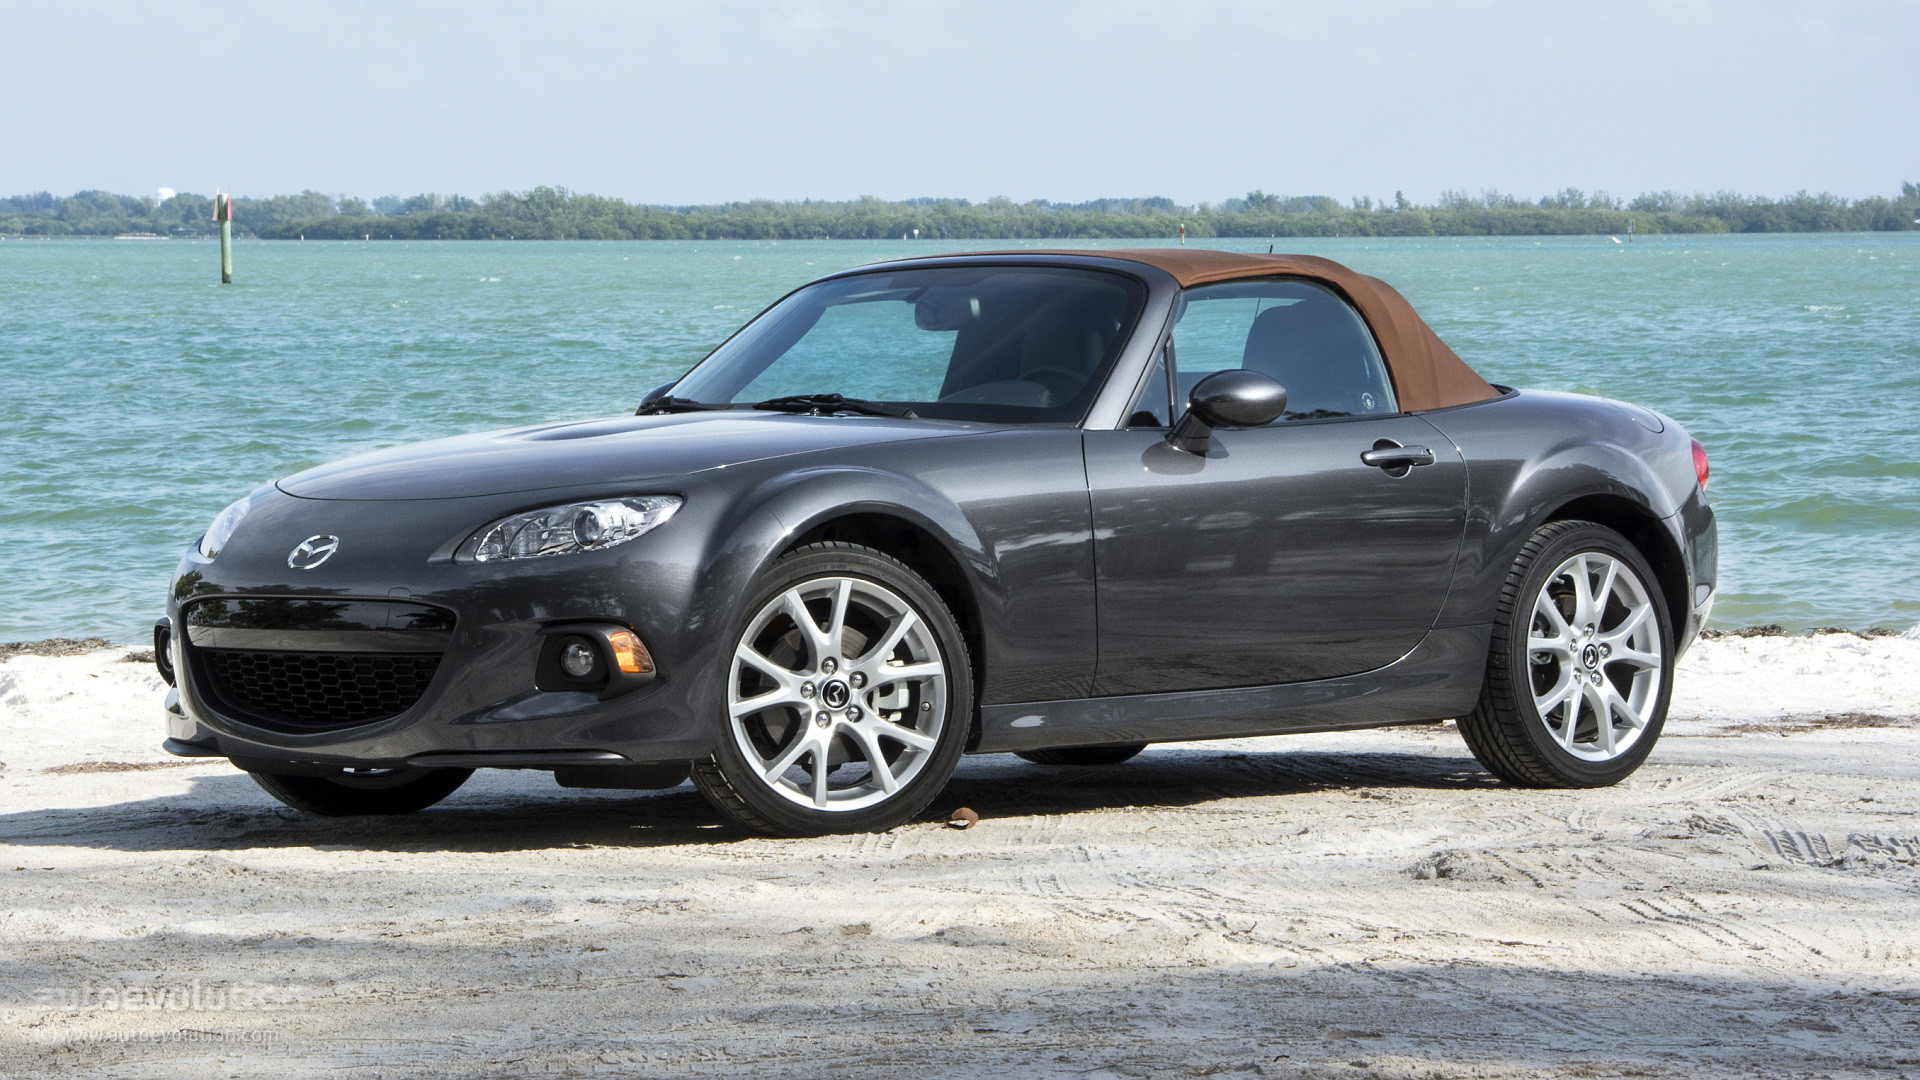 1920x1080 Mazda MX 5 Miata Stance Low Car Wallpapers HD Desktop And Mobile Backgrounds